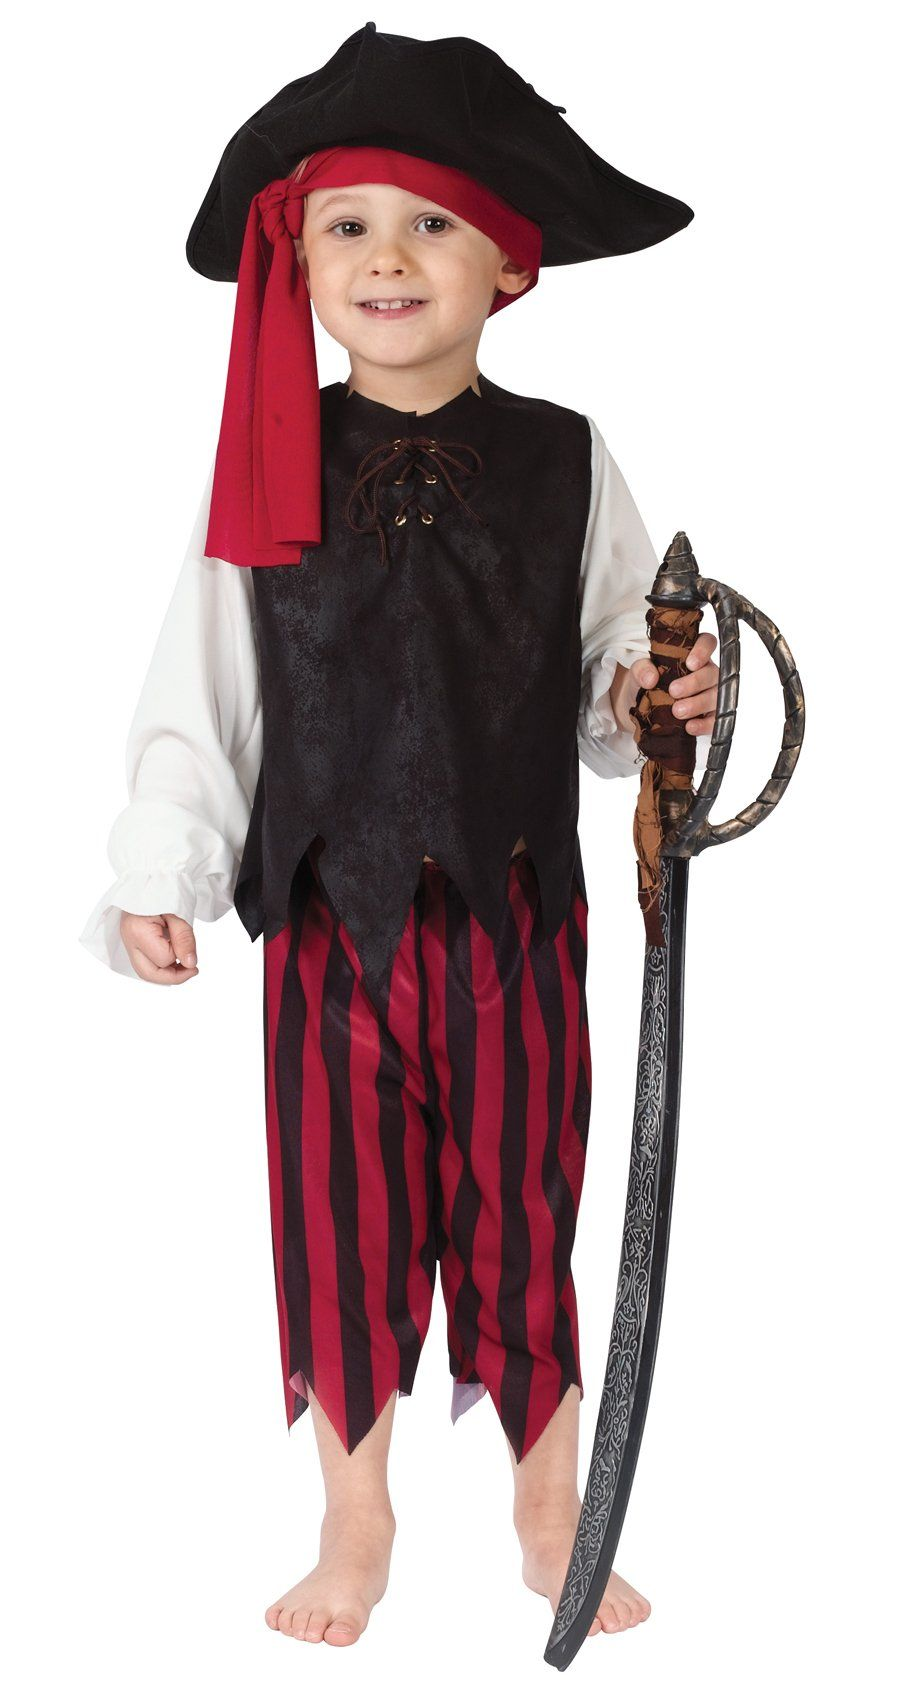 7a2d3777f90 Fun World Costumes Baby Boys Boy Caribbean Pirate Toddler Costume ...